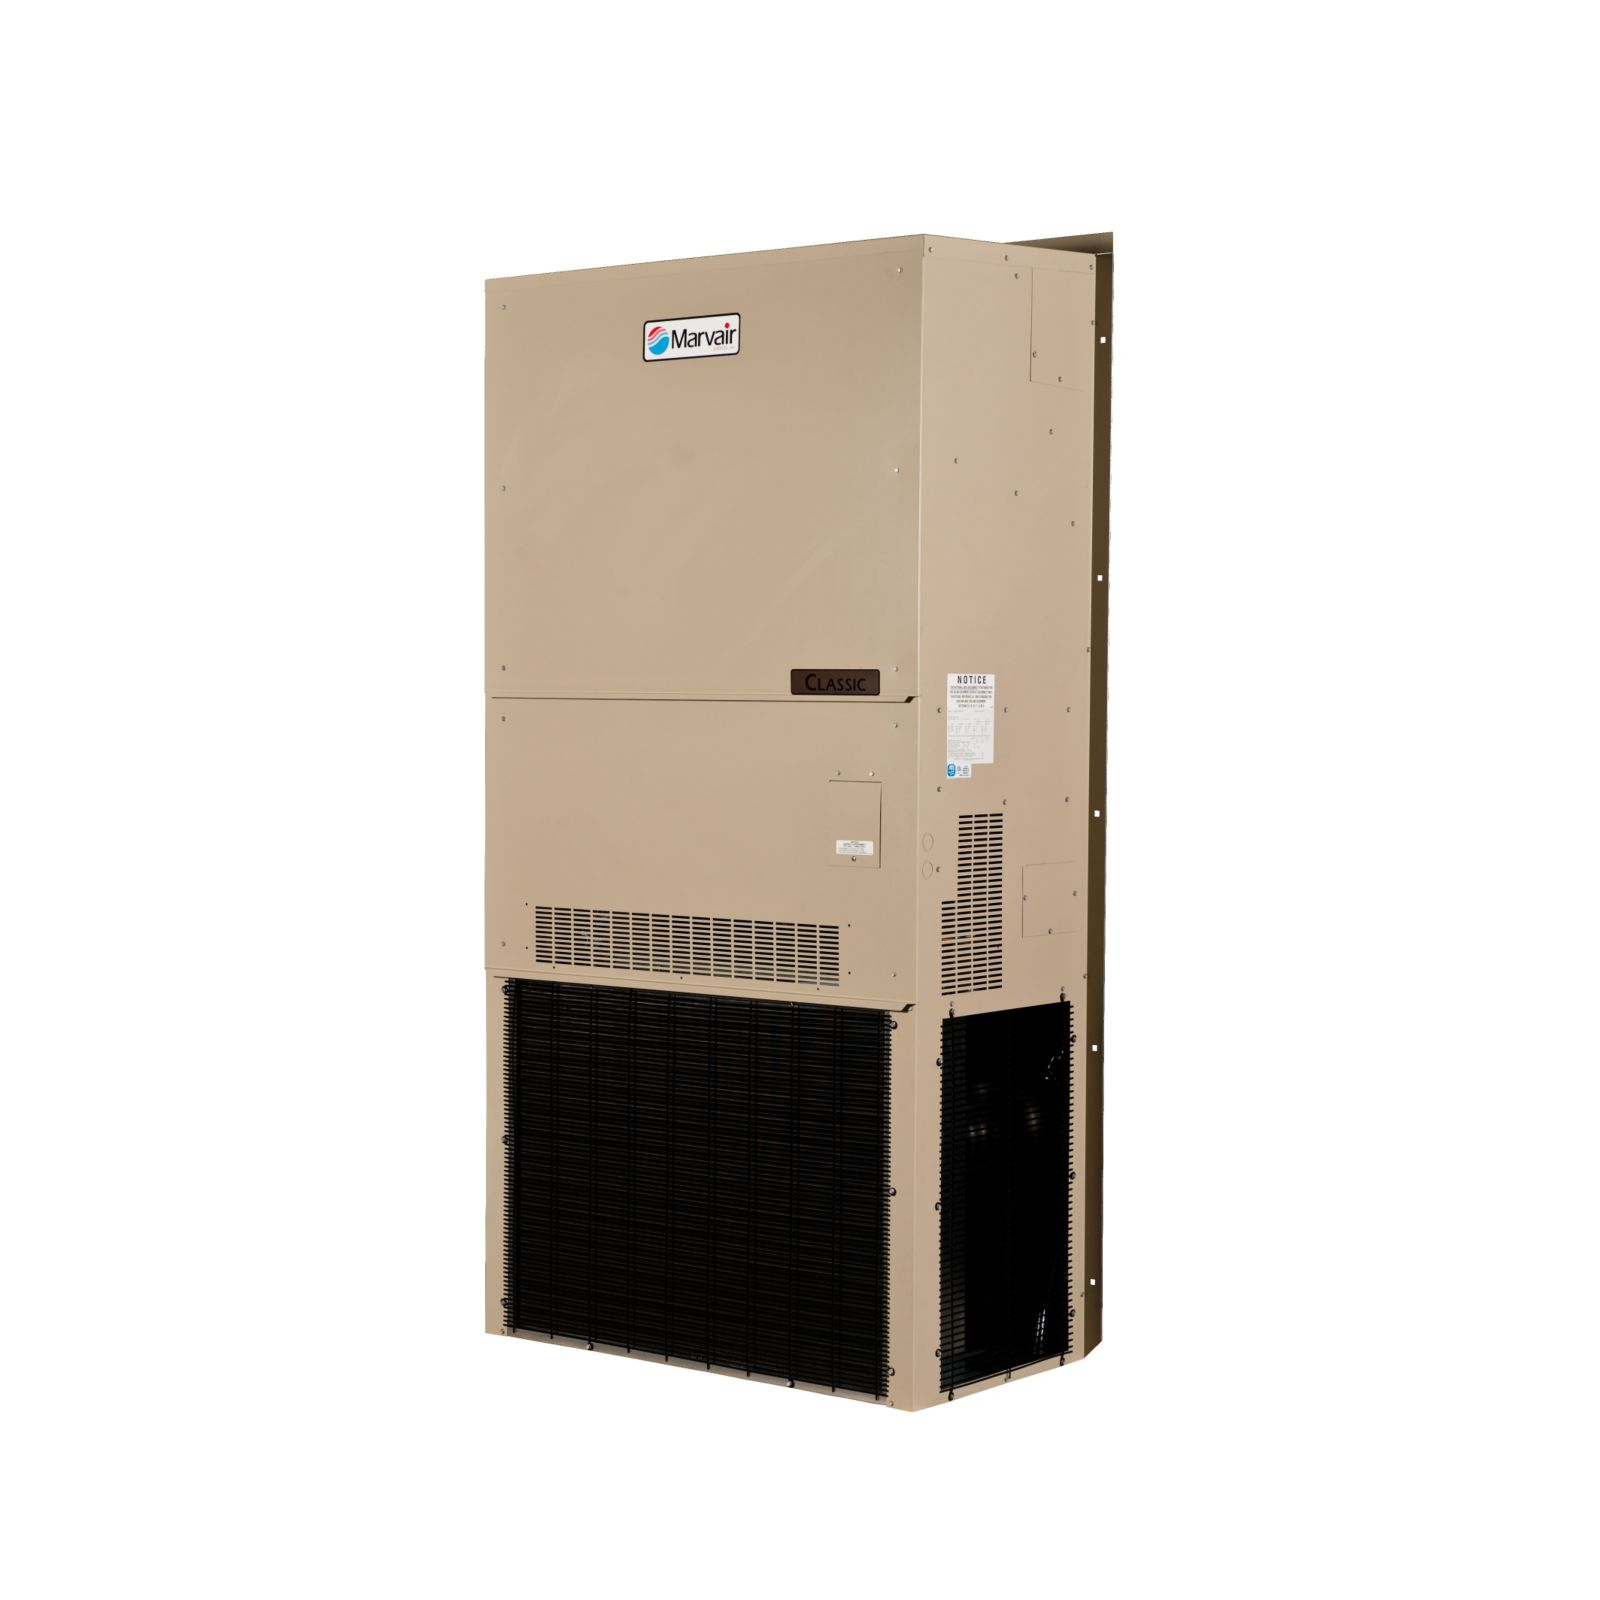 Marvair AVPA48ACA100NU-A2-100 - Wall Mount AC, ComPac I, 4 Ton, 208-230/1, 10KW, Manual Damper, Scroll Compressor, R410A